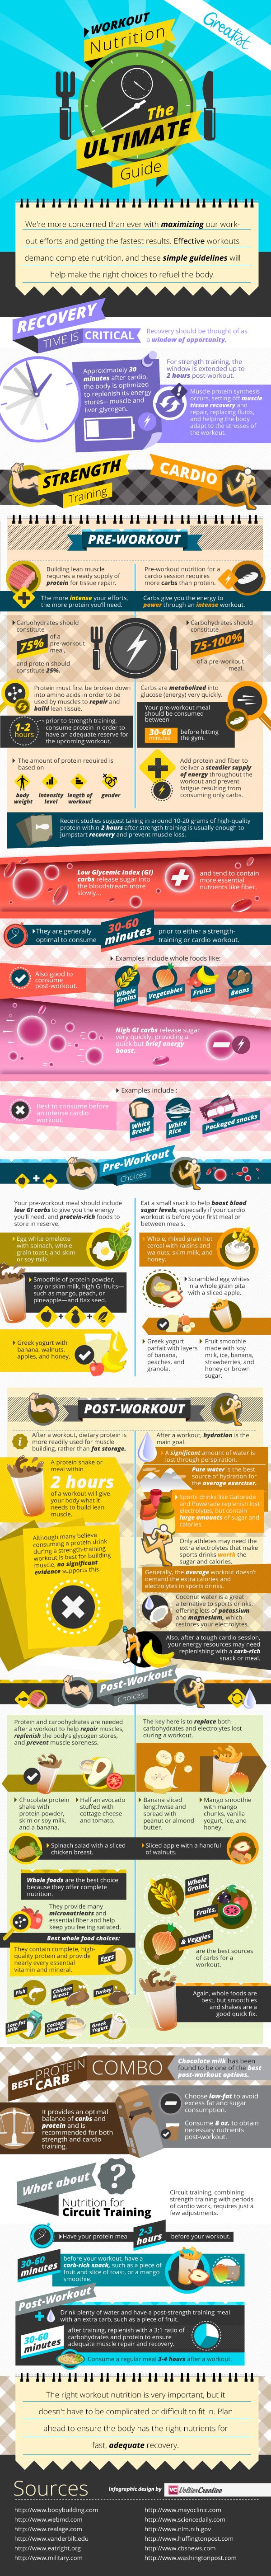 Food for Workout-Infographic